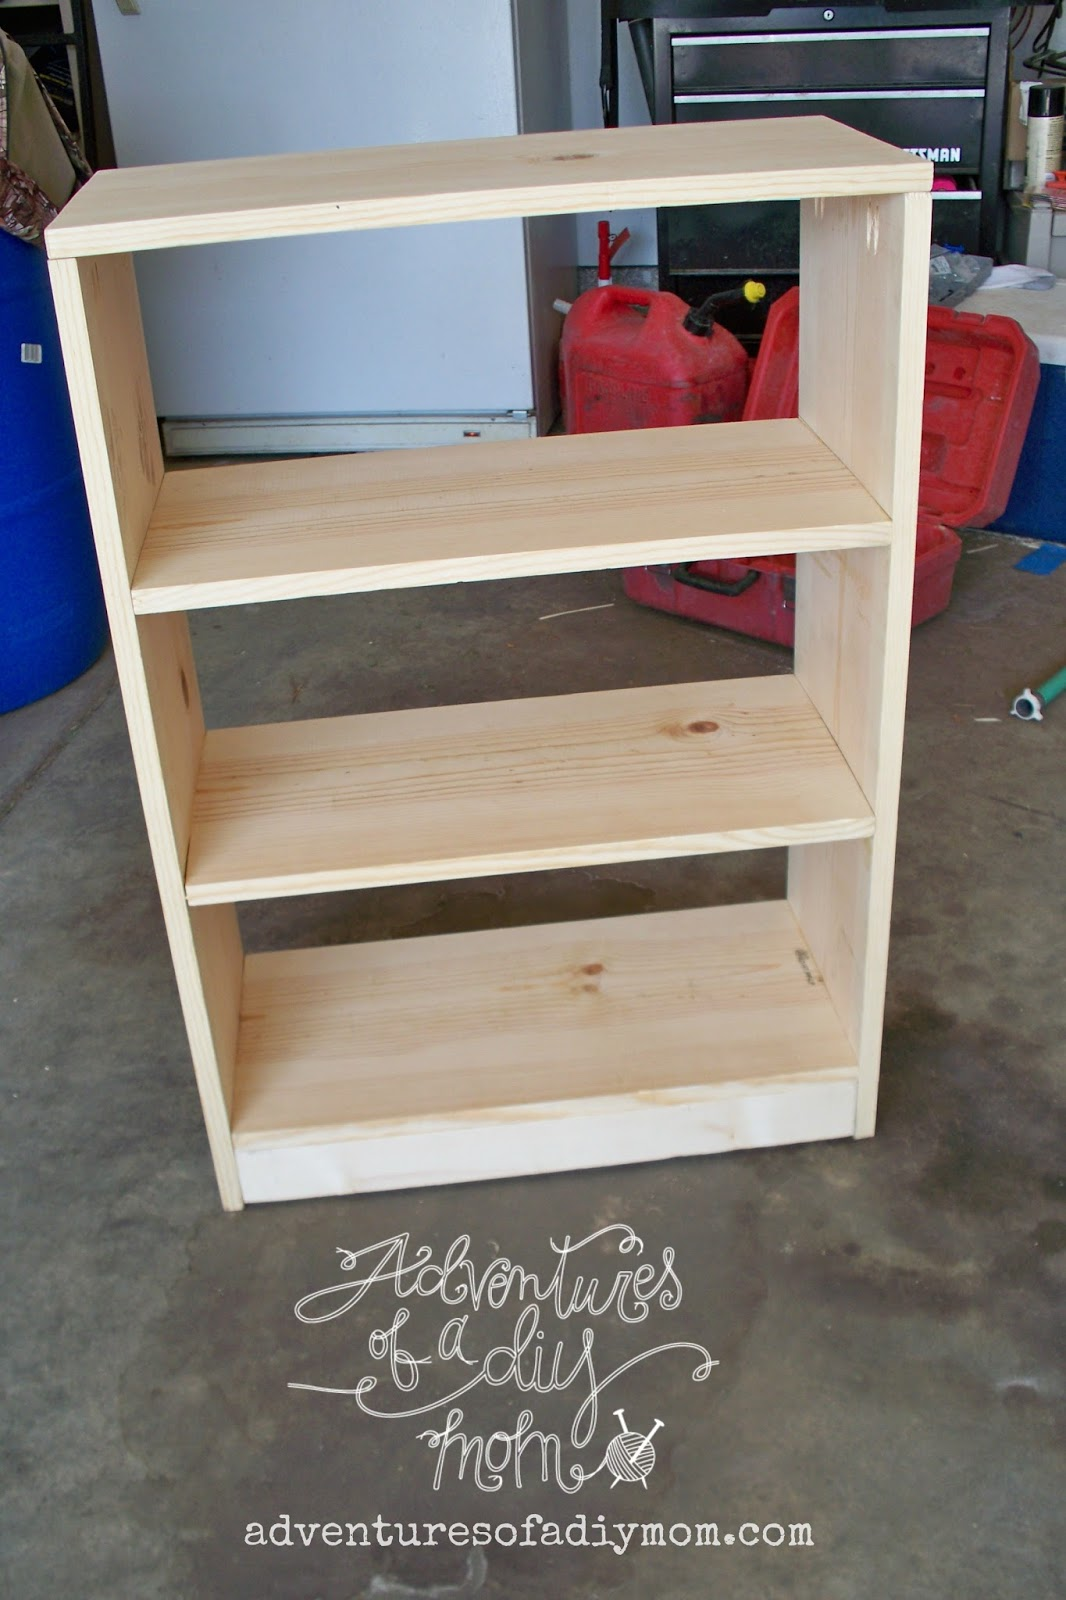 How to Build a Bookshelf - Adventures of a DIY Mom